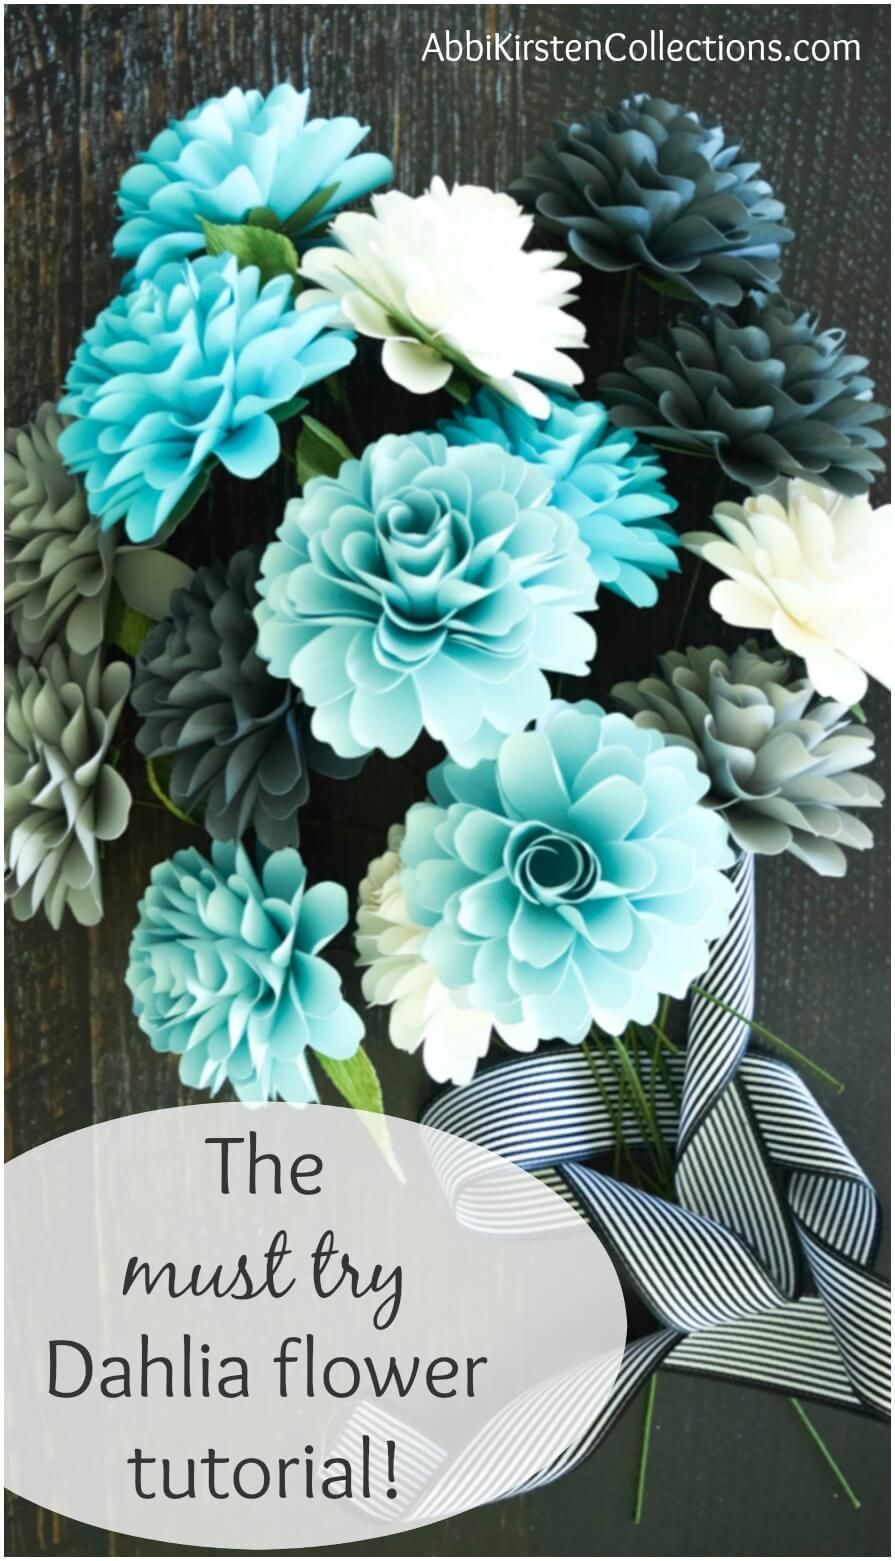 How to Make Paper Dahlia Flowers: Small Paper Flower Tutorial